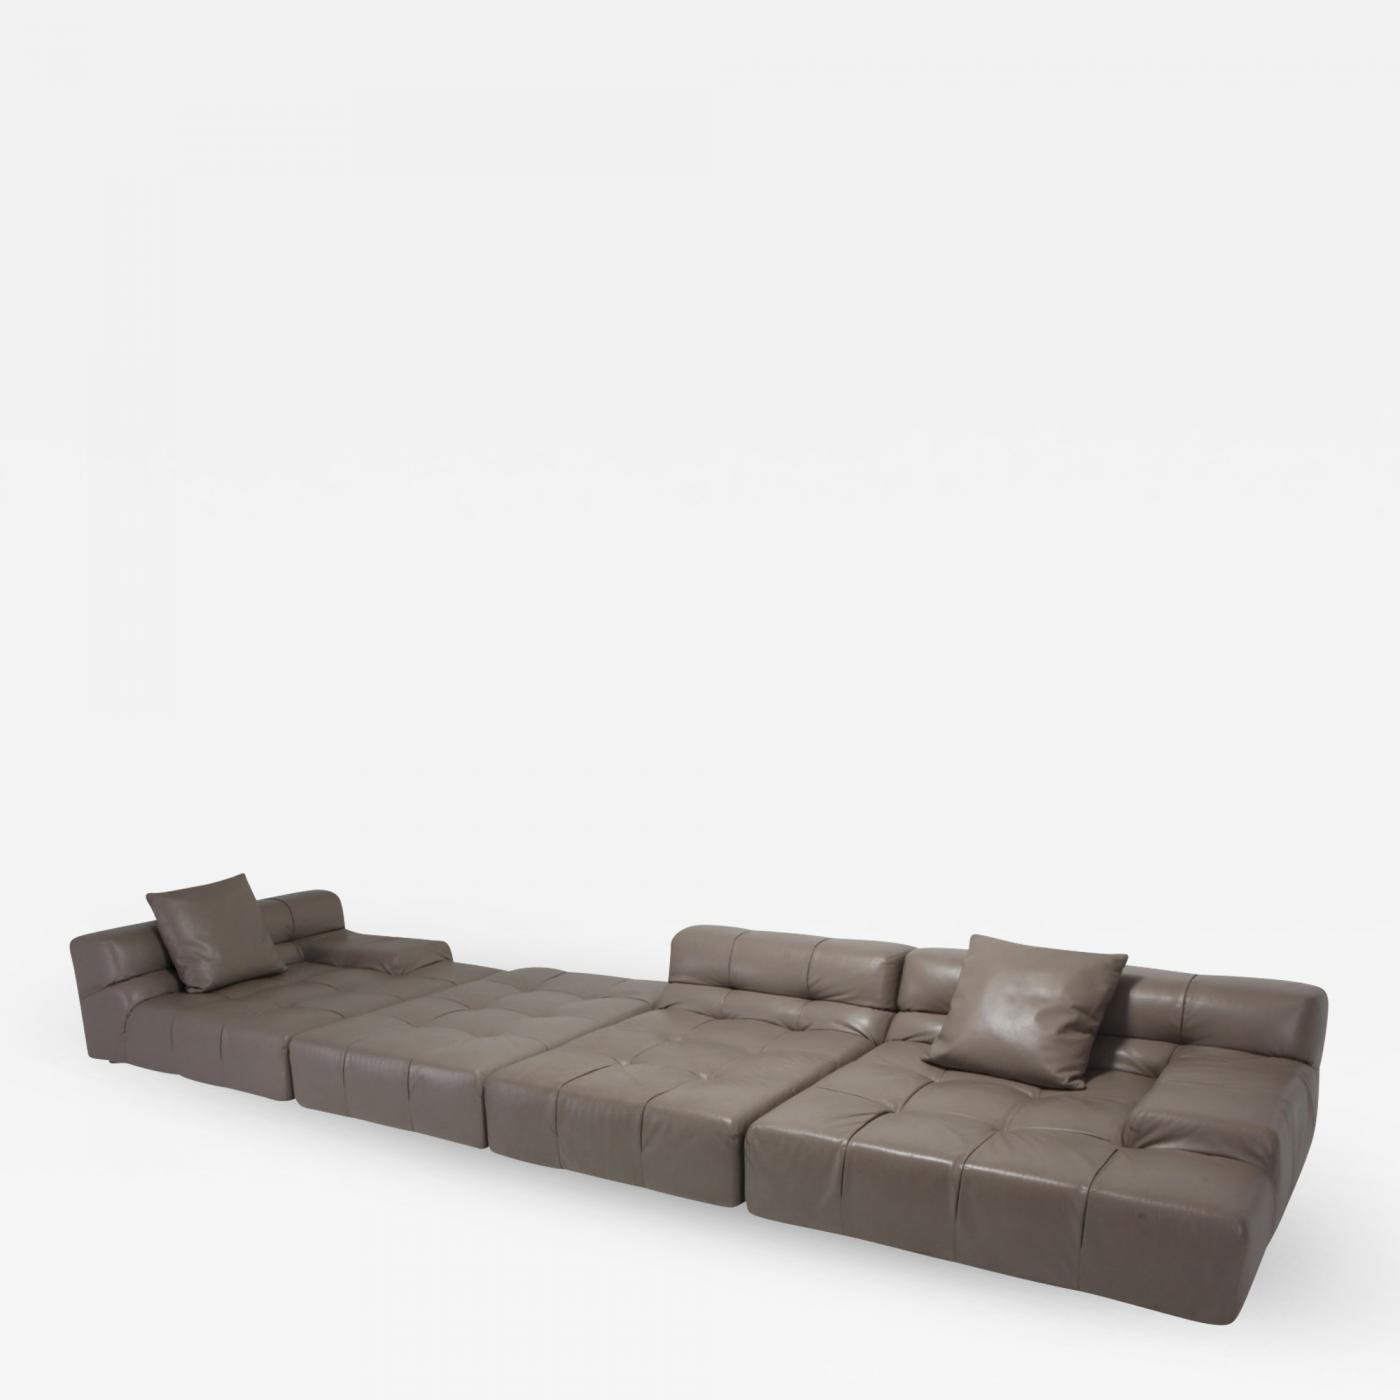 Terrific Tufty Time Bb Italia Taupe Leather Sectional Sofa By Patricia Ibusinesslaw Wood Chair Design Ideas Ibusinesslaworg